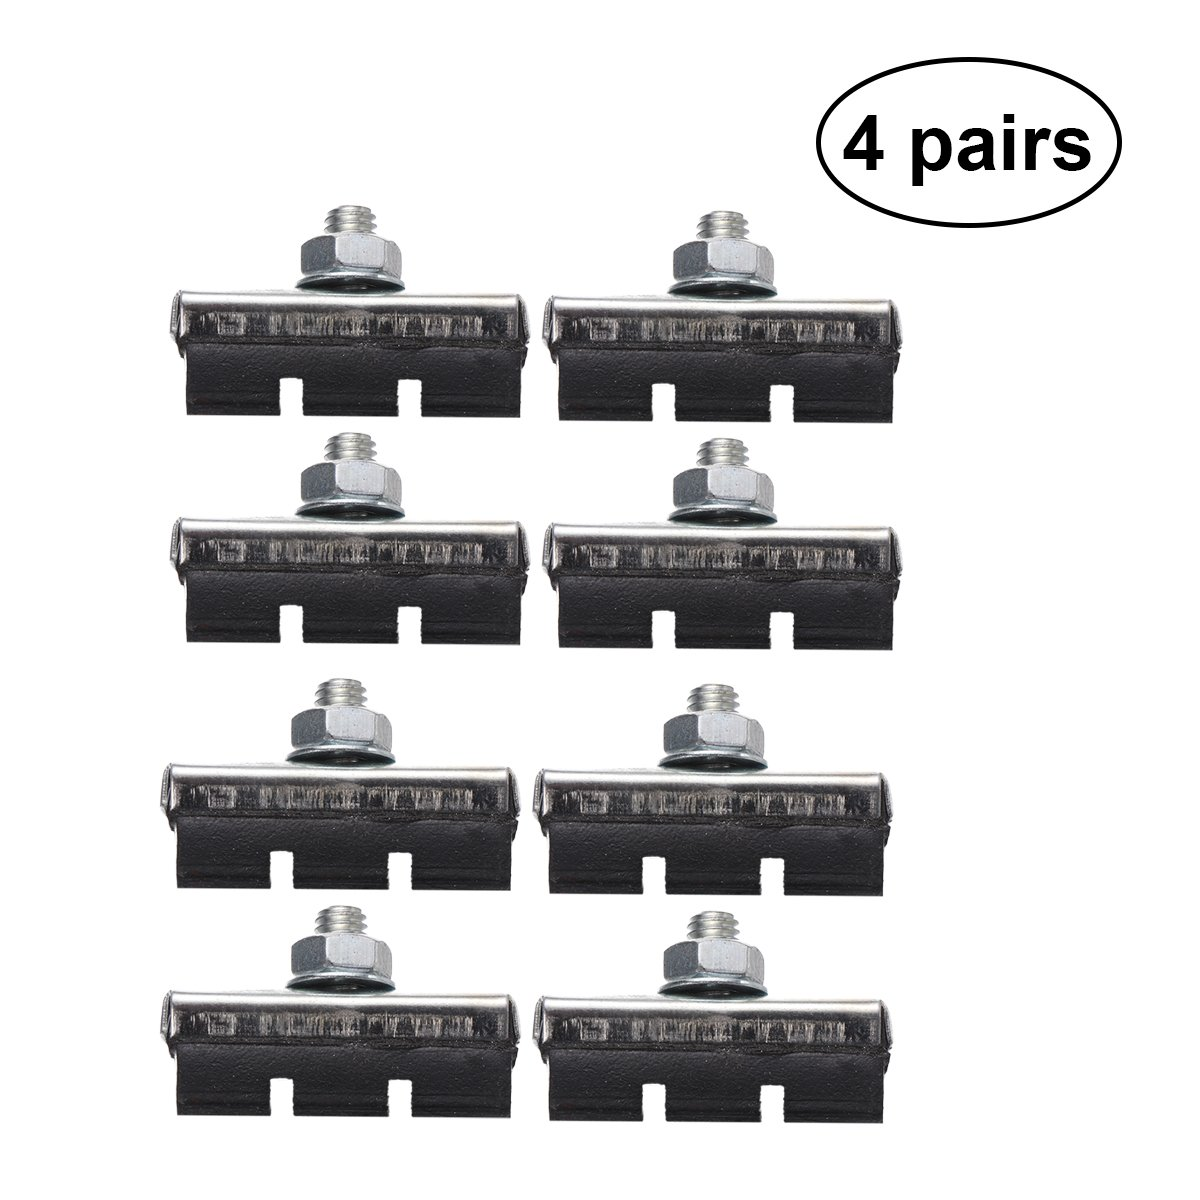 VORCOOL 4 Pairs V Brake Pads Braking Shoes Blocks Cycling Accessories for Mountain Road Bicycle Cycling Bike (Black)